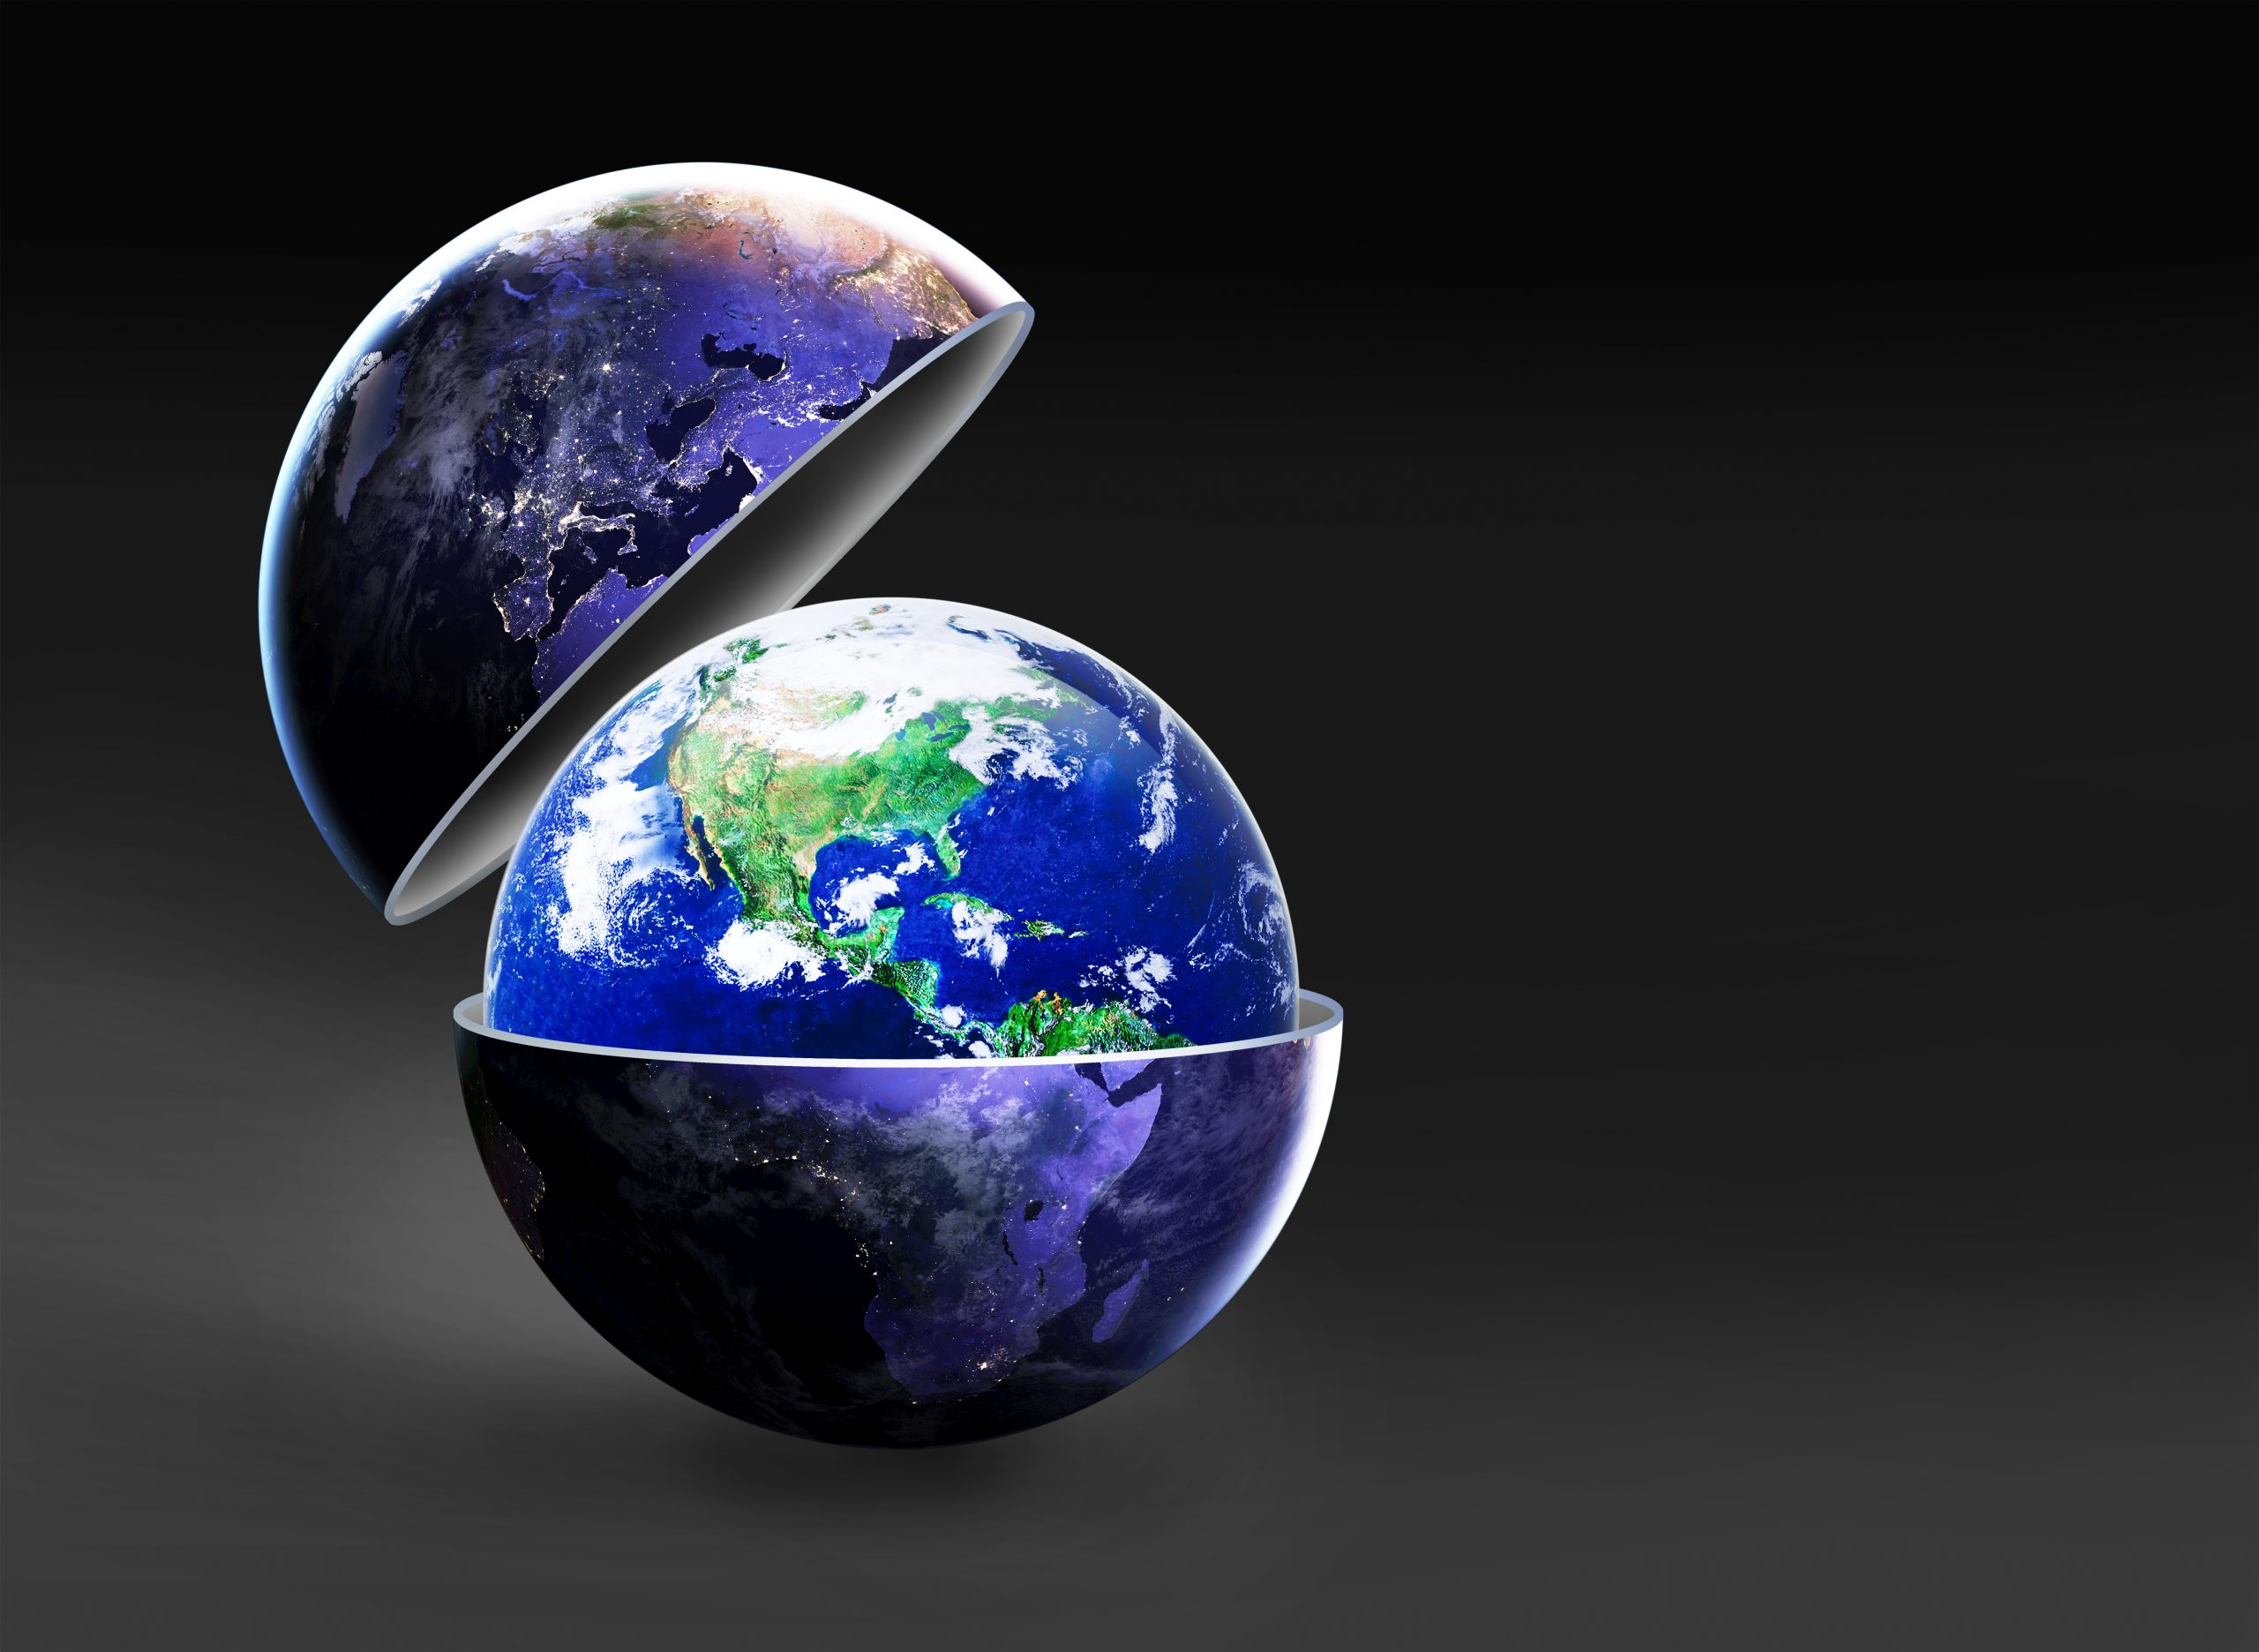 open up your eyes to the new World, New world idea concept, Earth in dark open up to show the bright day earth inside on dark background, Elements of this image furnished by NASA,